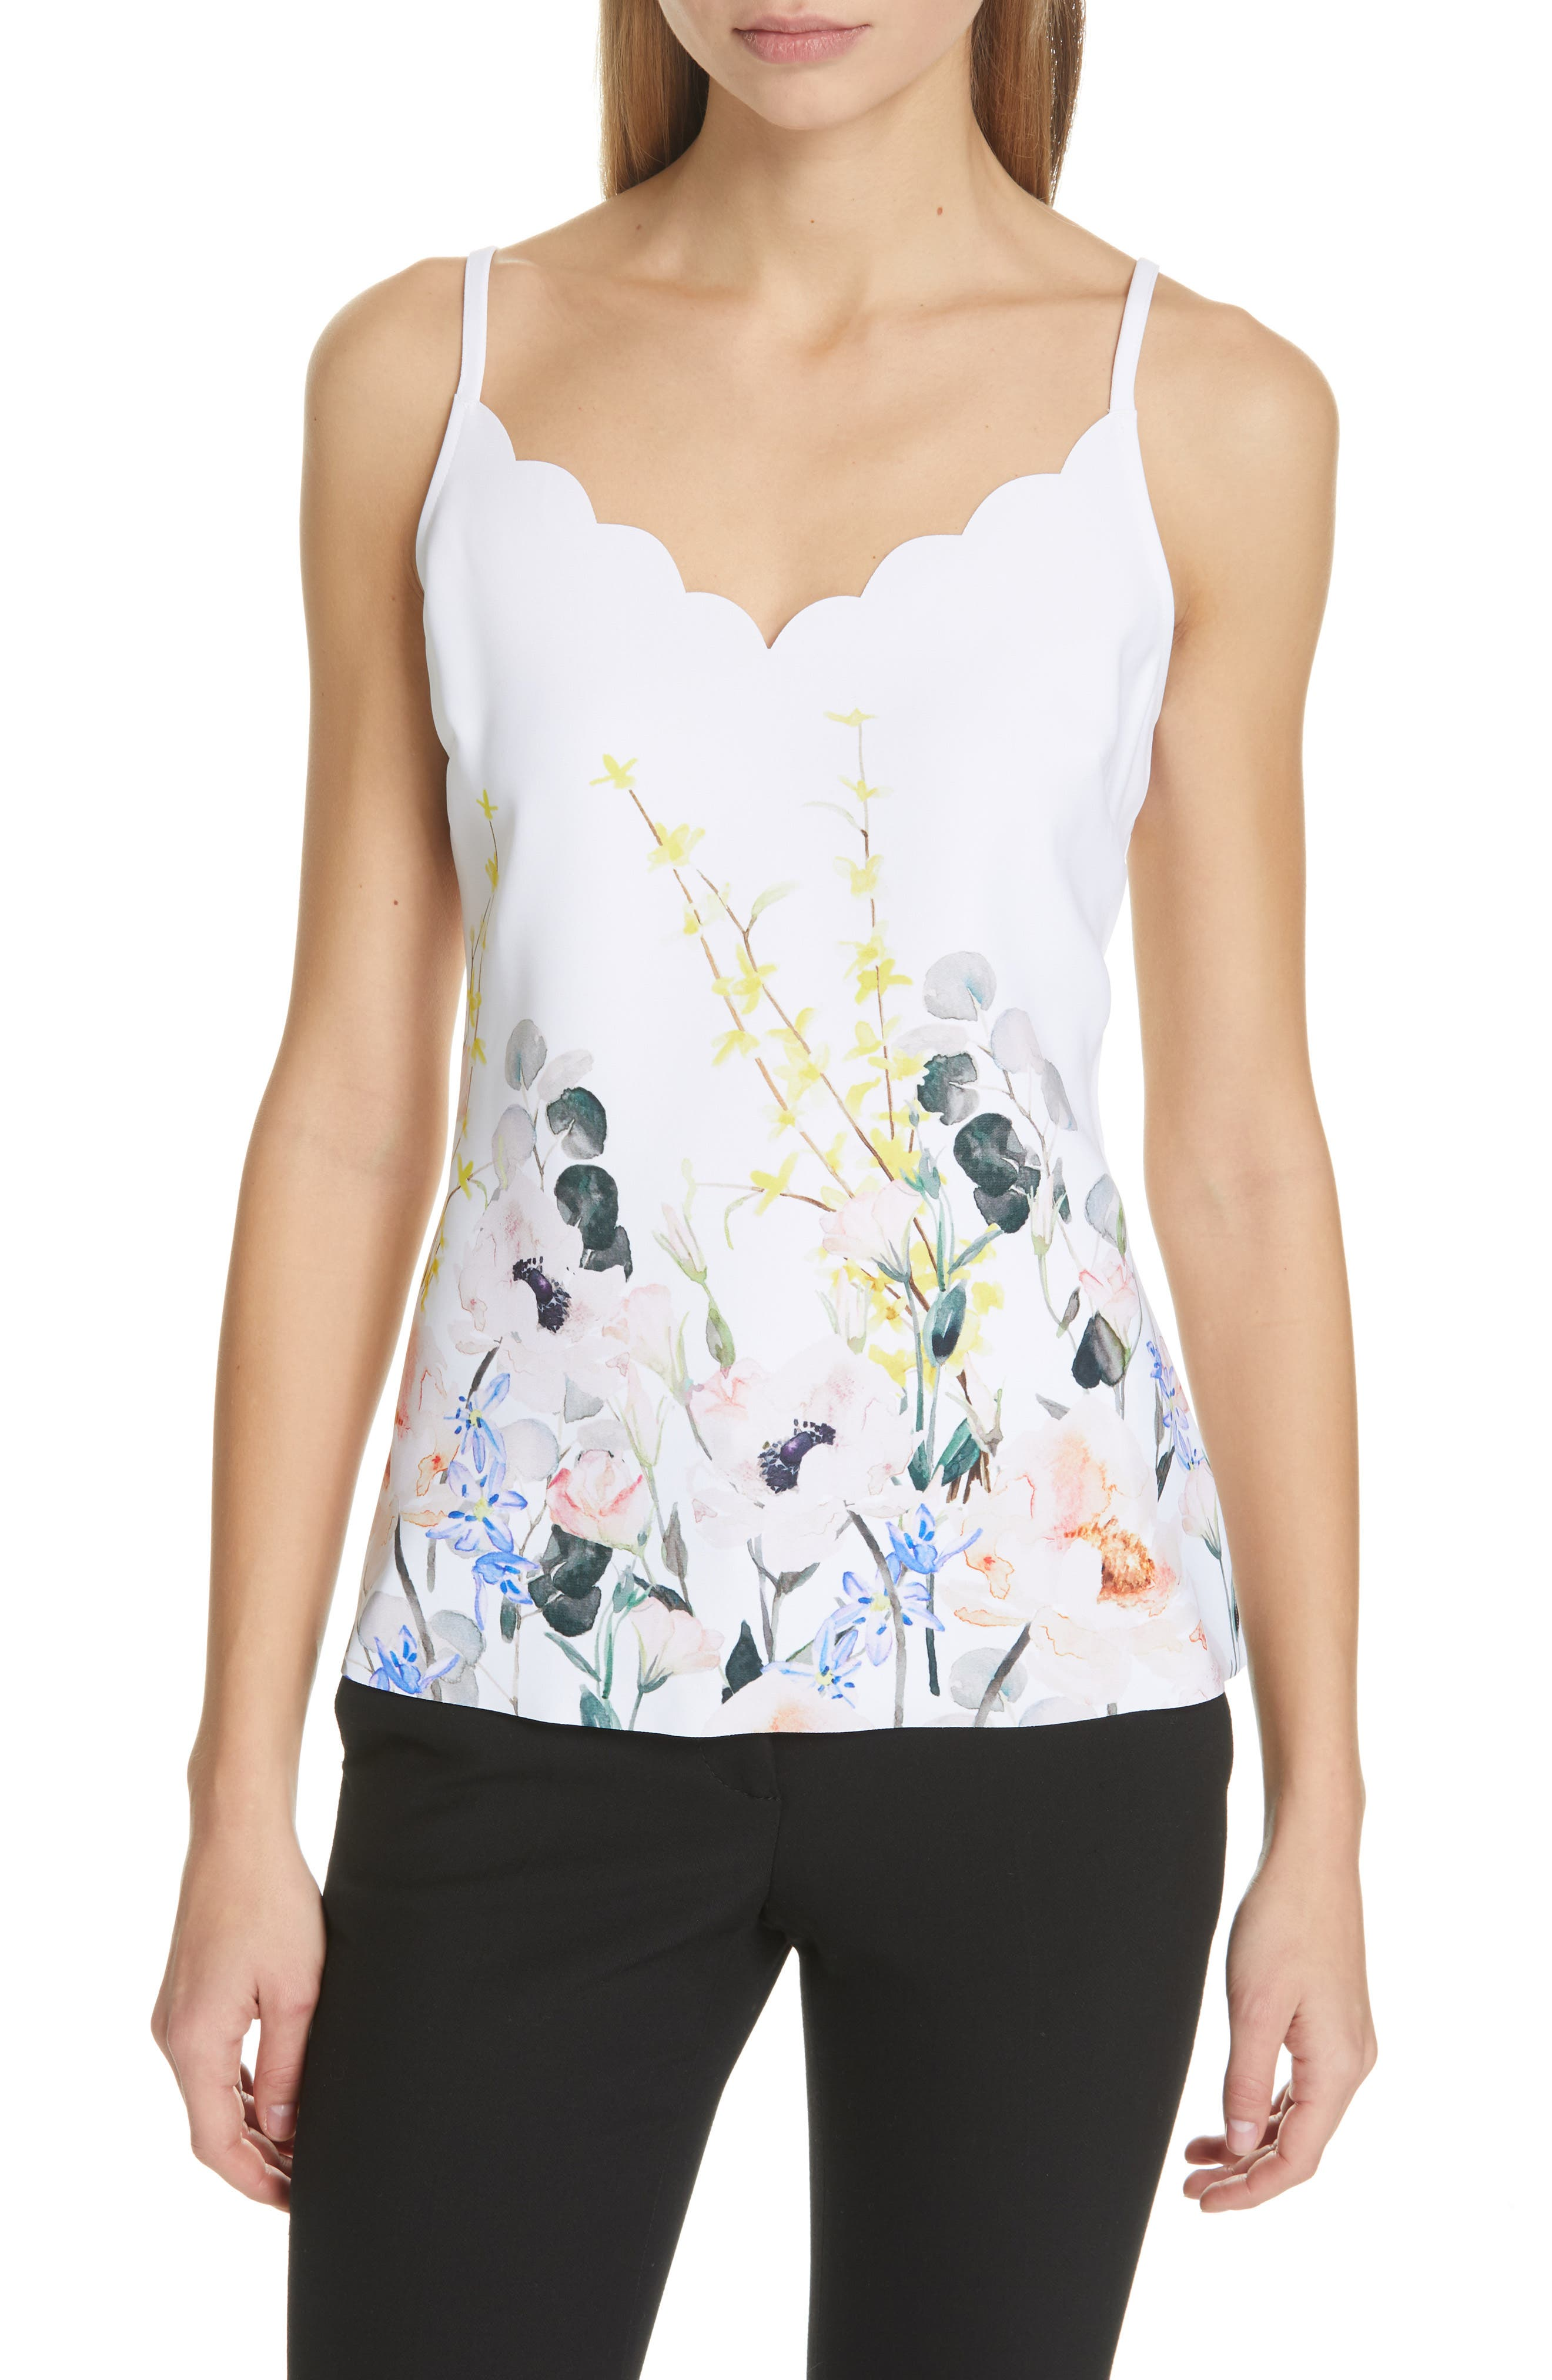 Ziina Elegance Scallop Camisole,                             Main thumbnail 1, color,                             WHITE